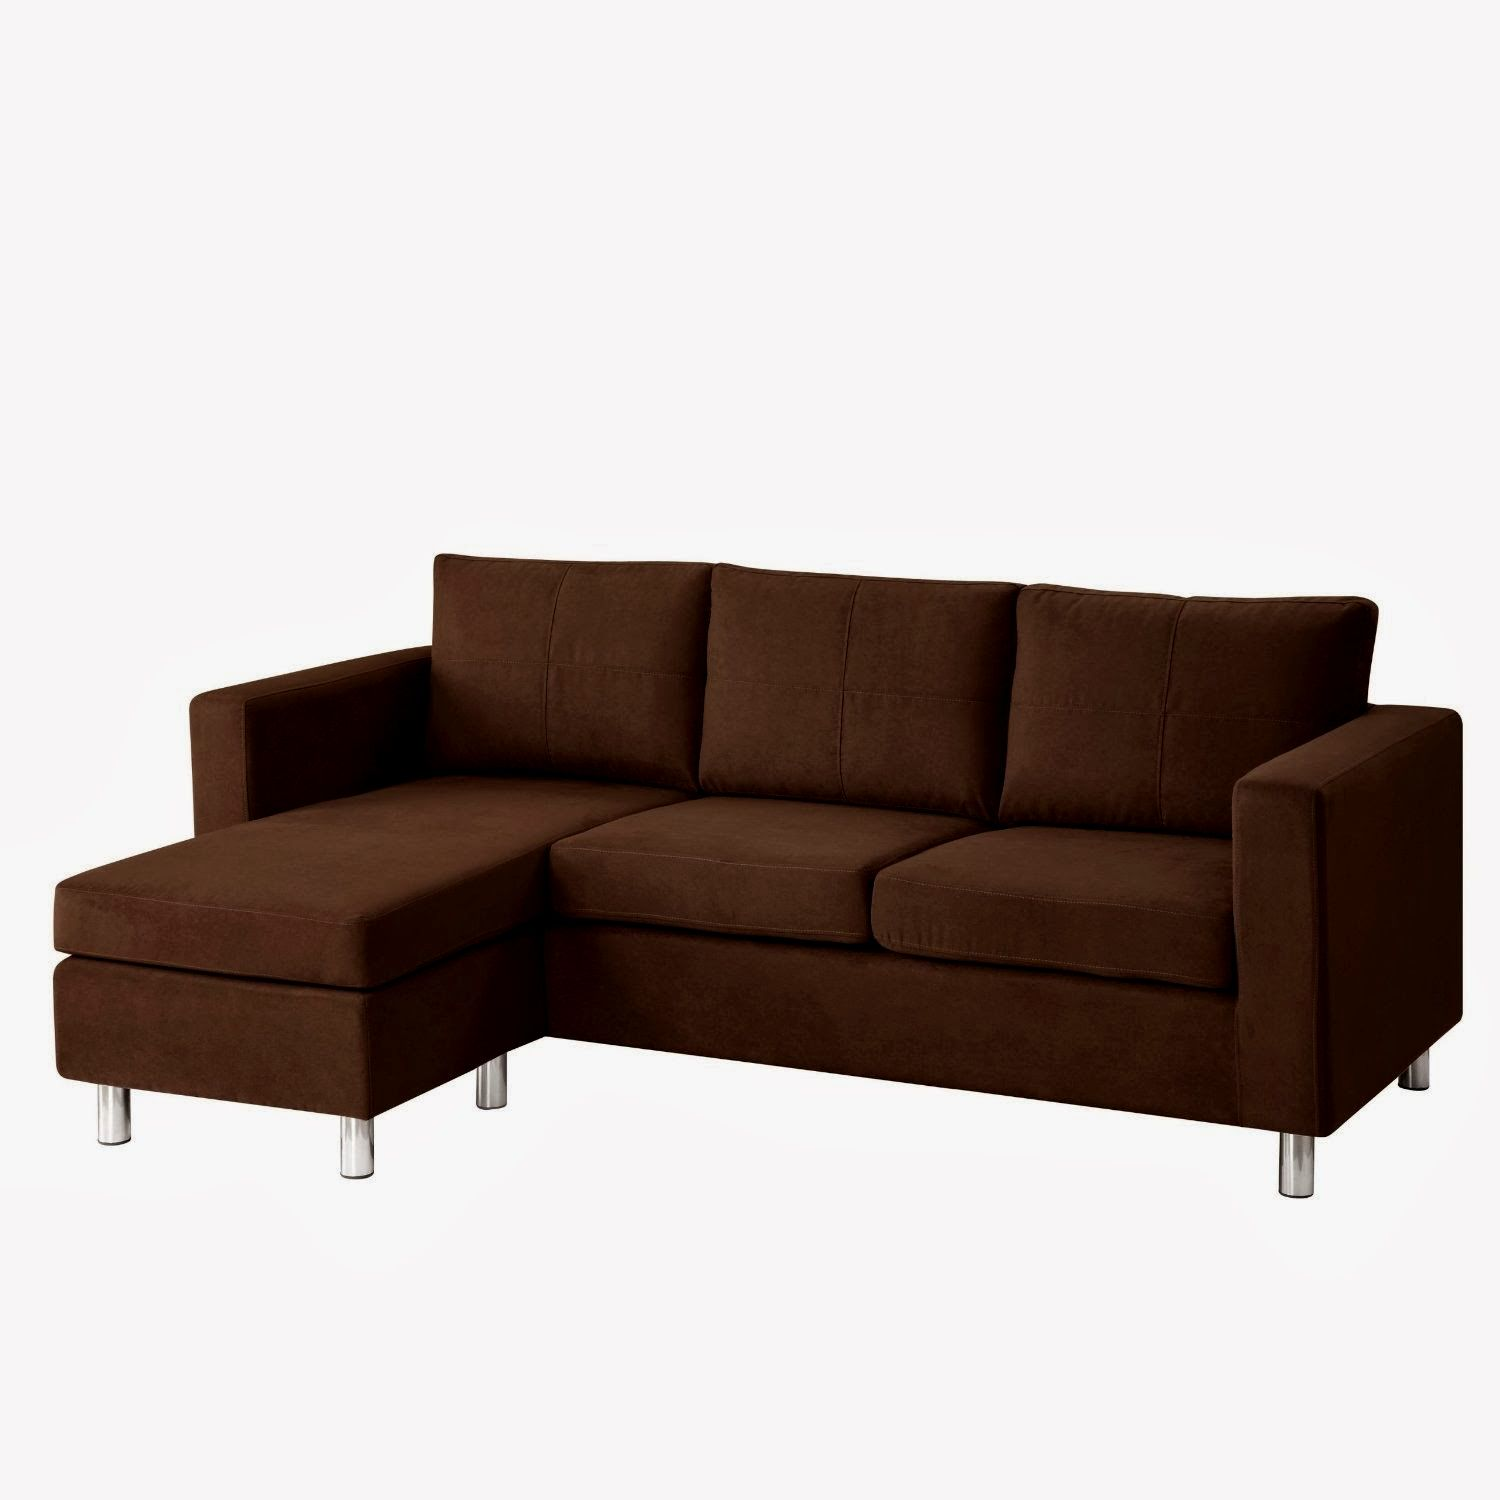 best of sectional sofa with chaise photo-Superb Sectional sofa with Chaise Design